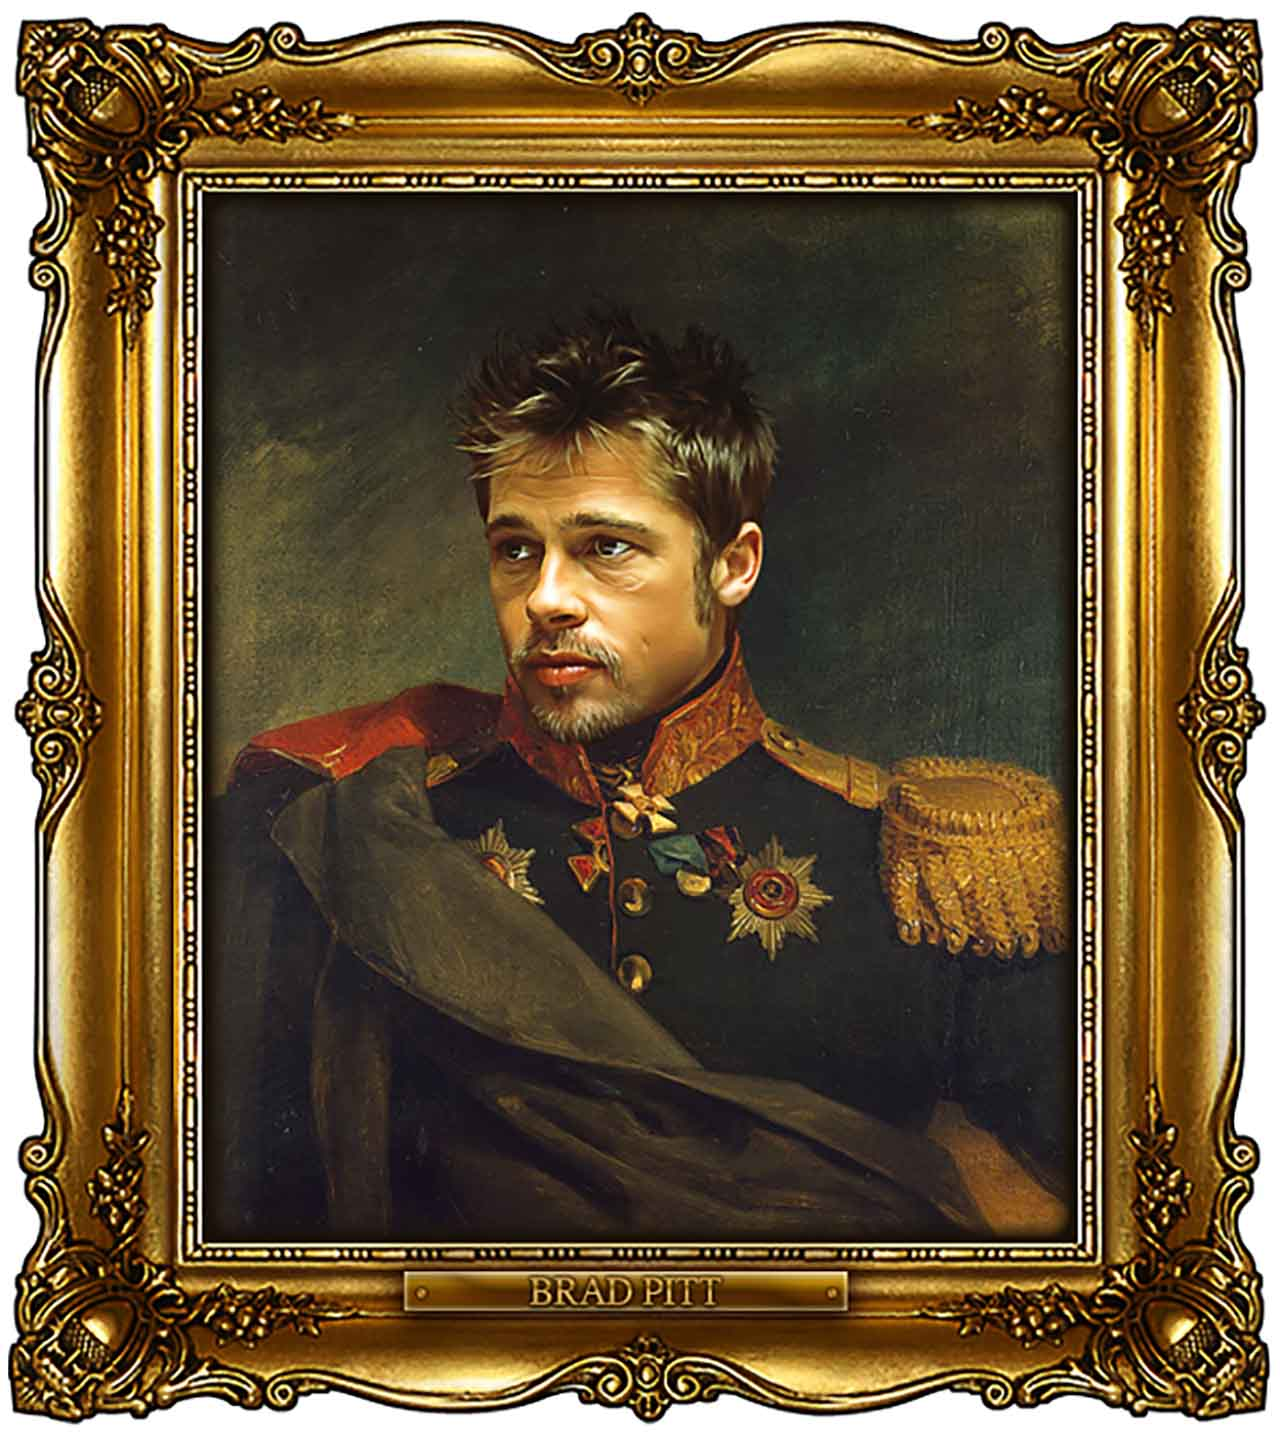 Artist Turns Famous Actors Into Russian Generals - Brad Pitt